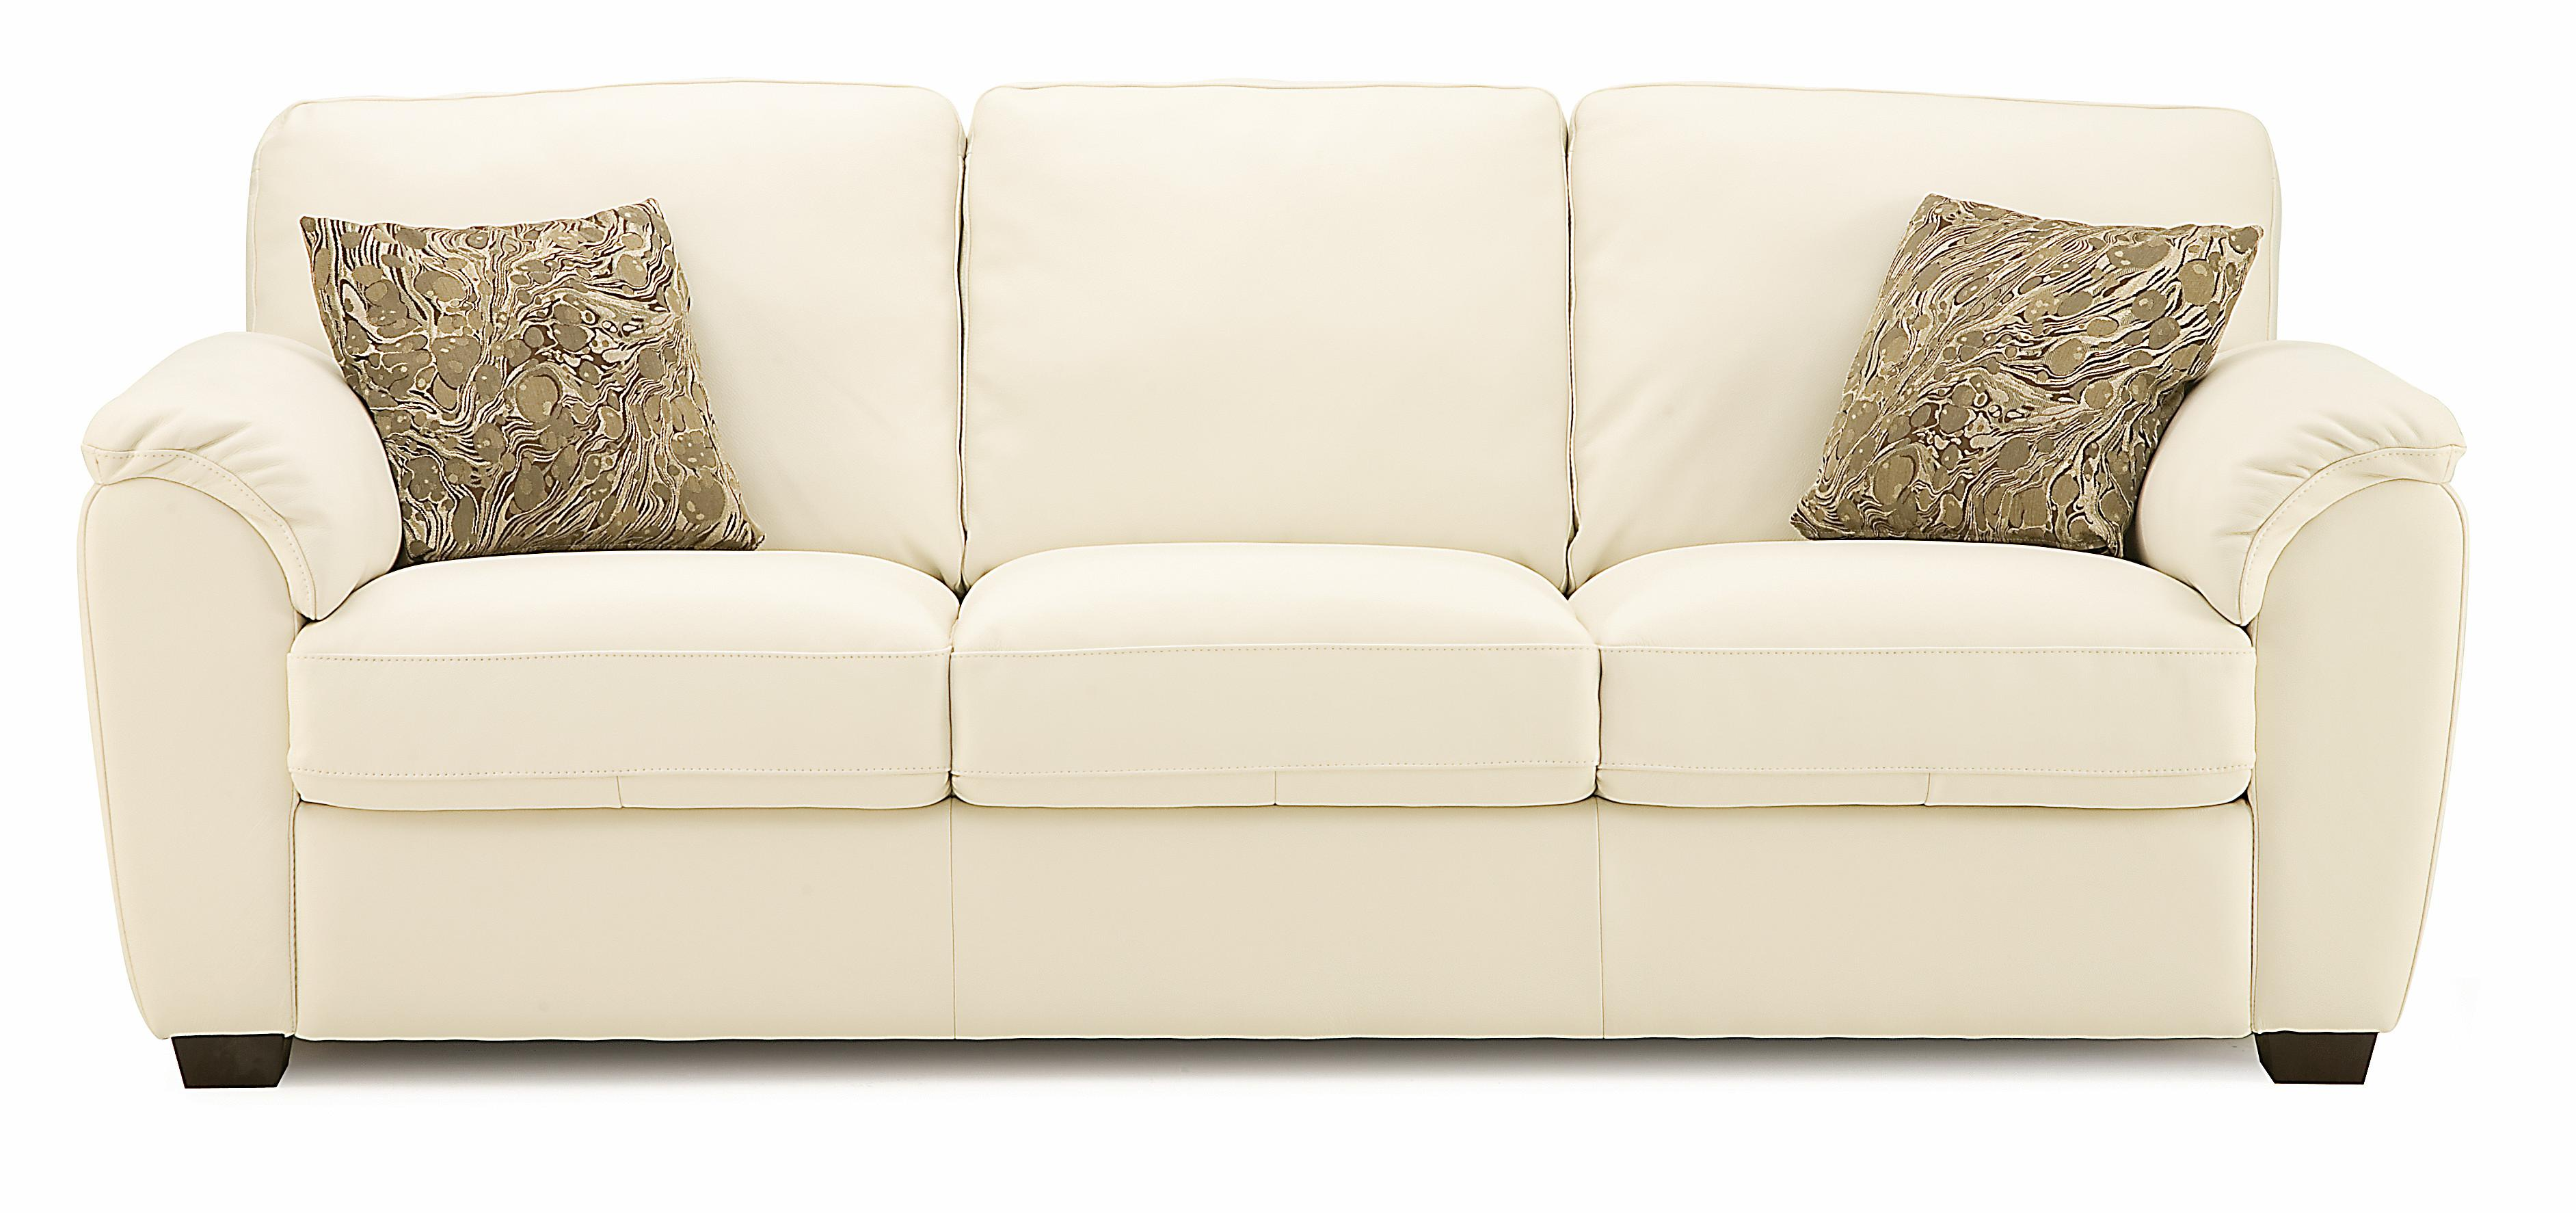 palliser stationary sofas soft line italian leather sofa lanza casual with sloped pillow arms